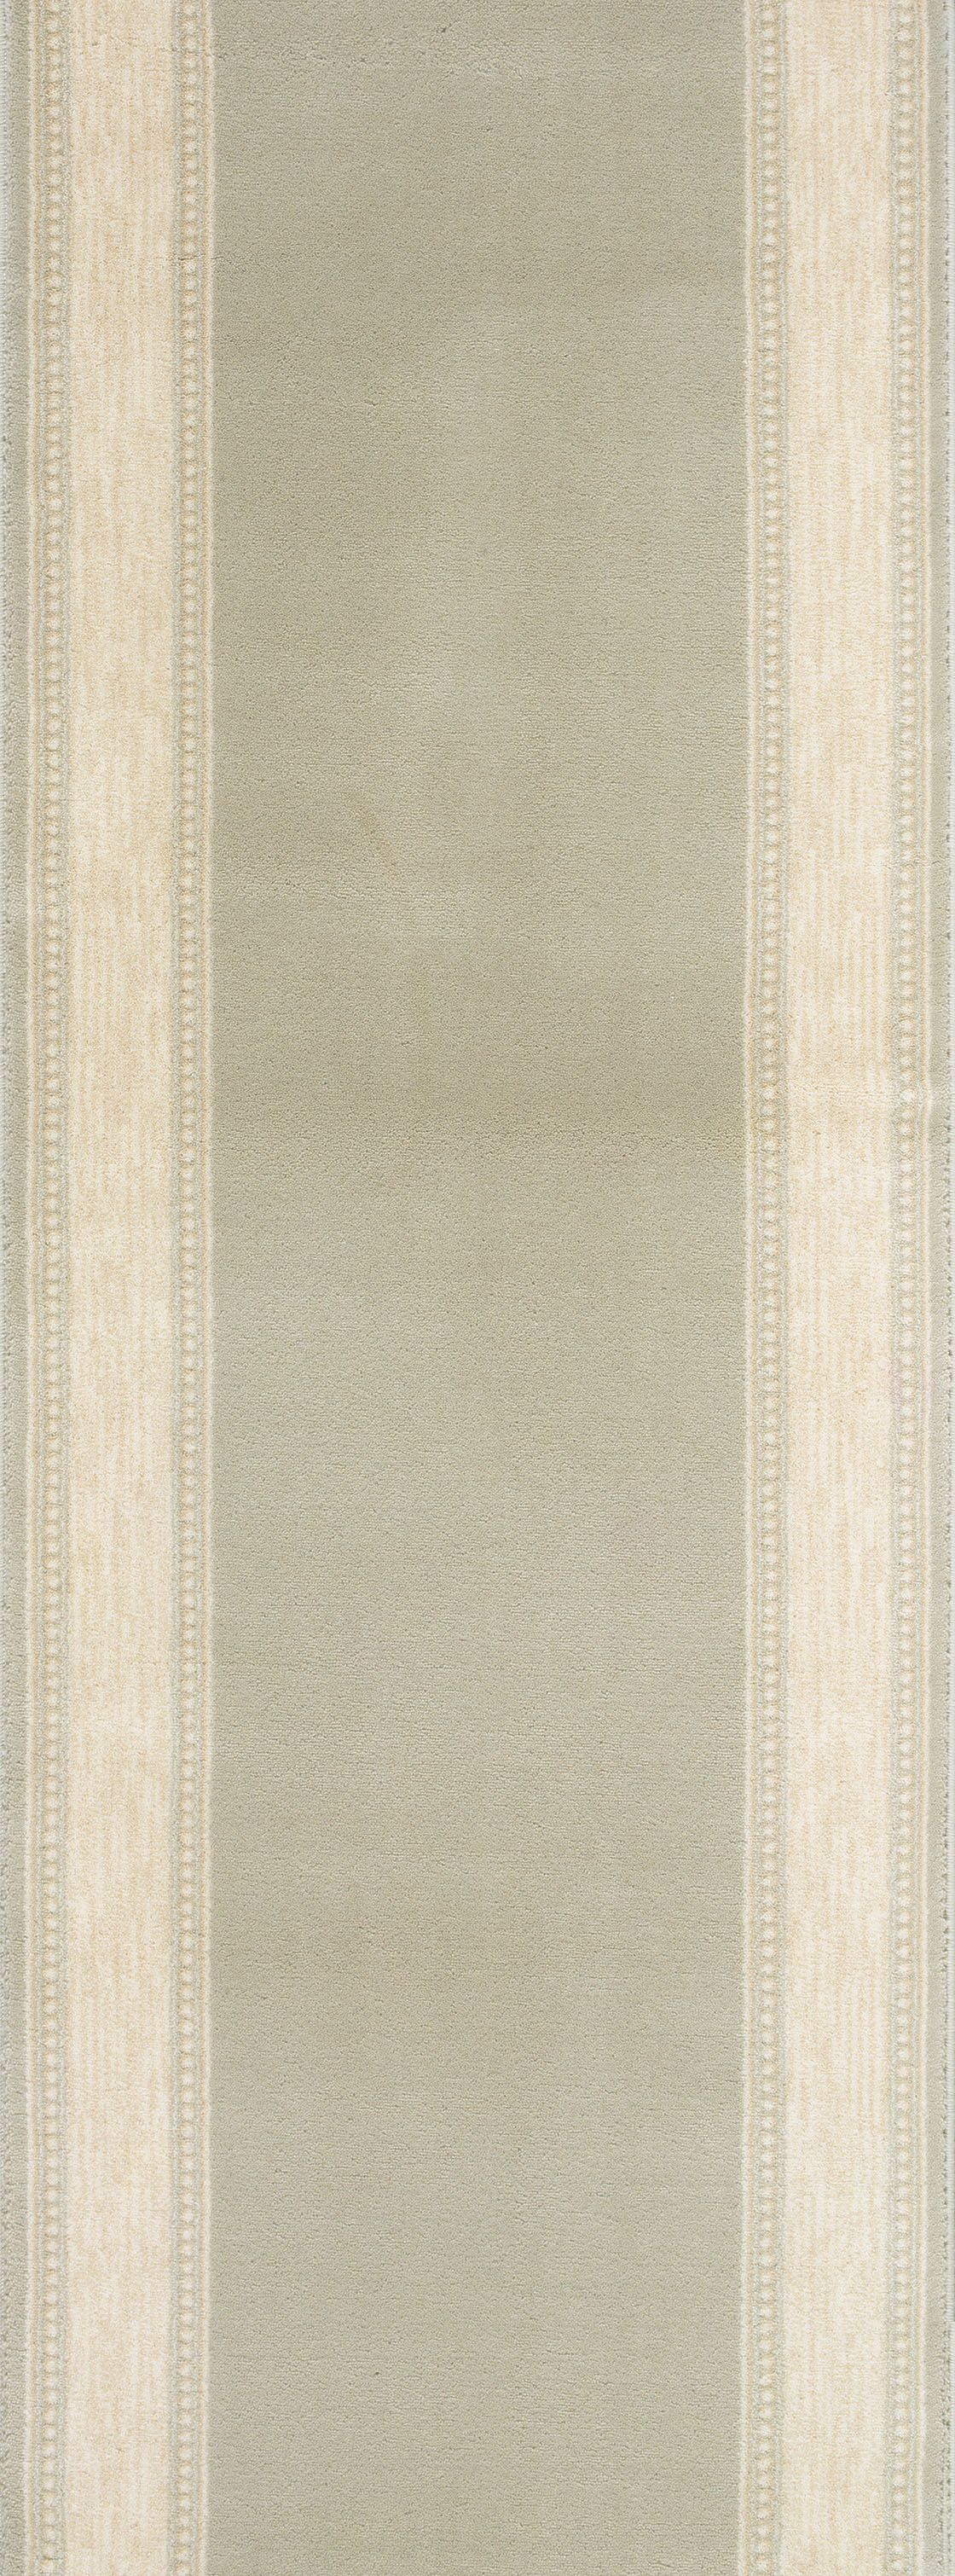 Sidhi Green Area Rug Rug Size: Runner 2'2